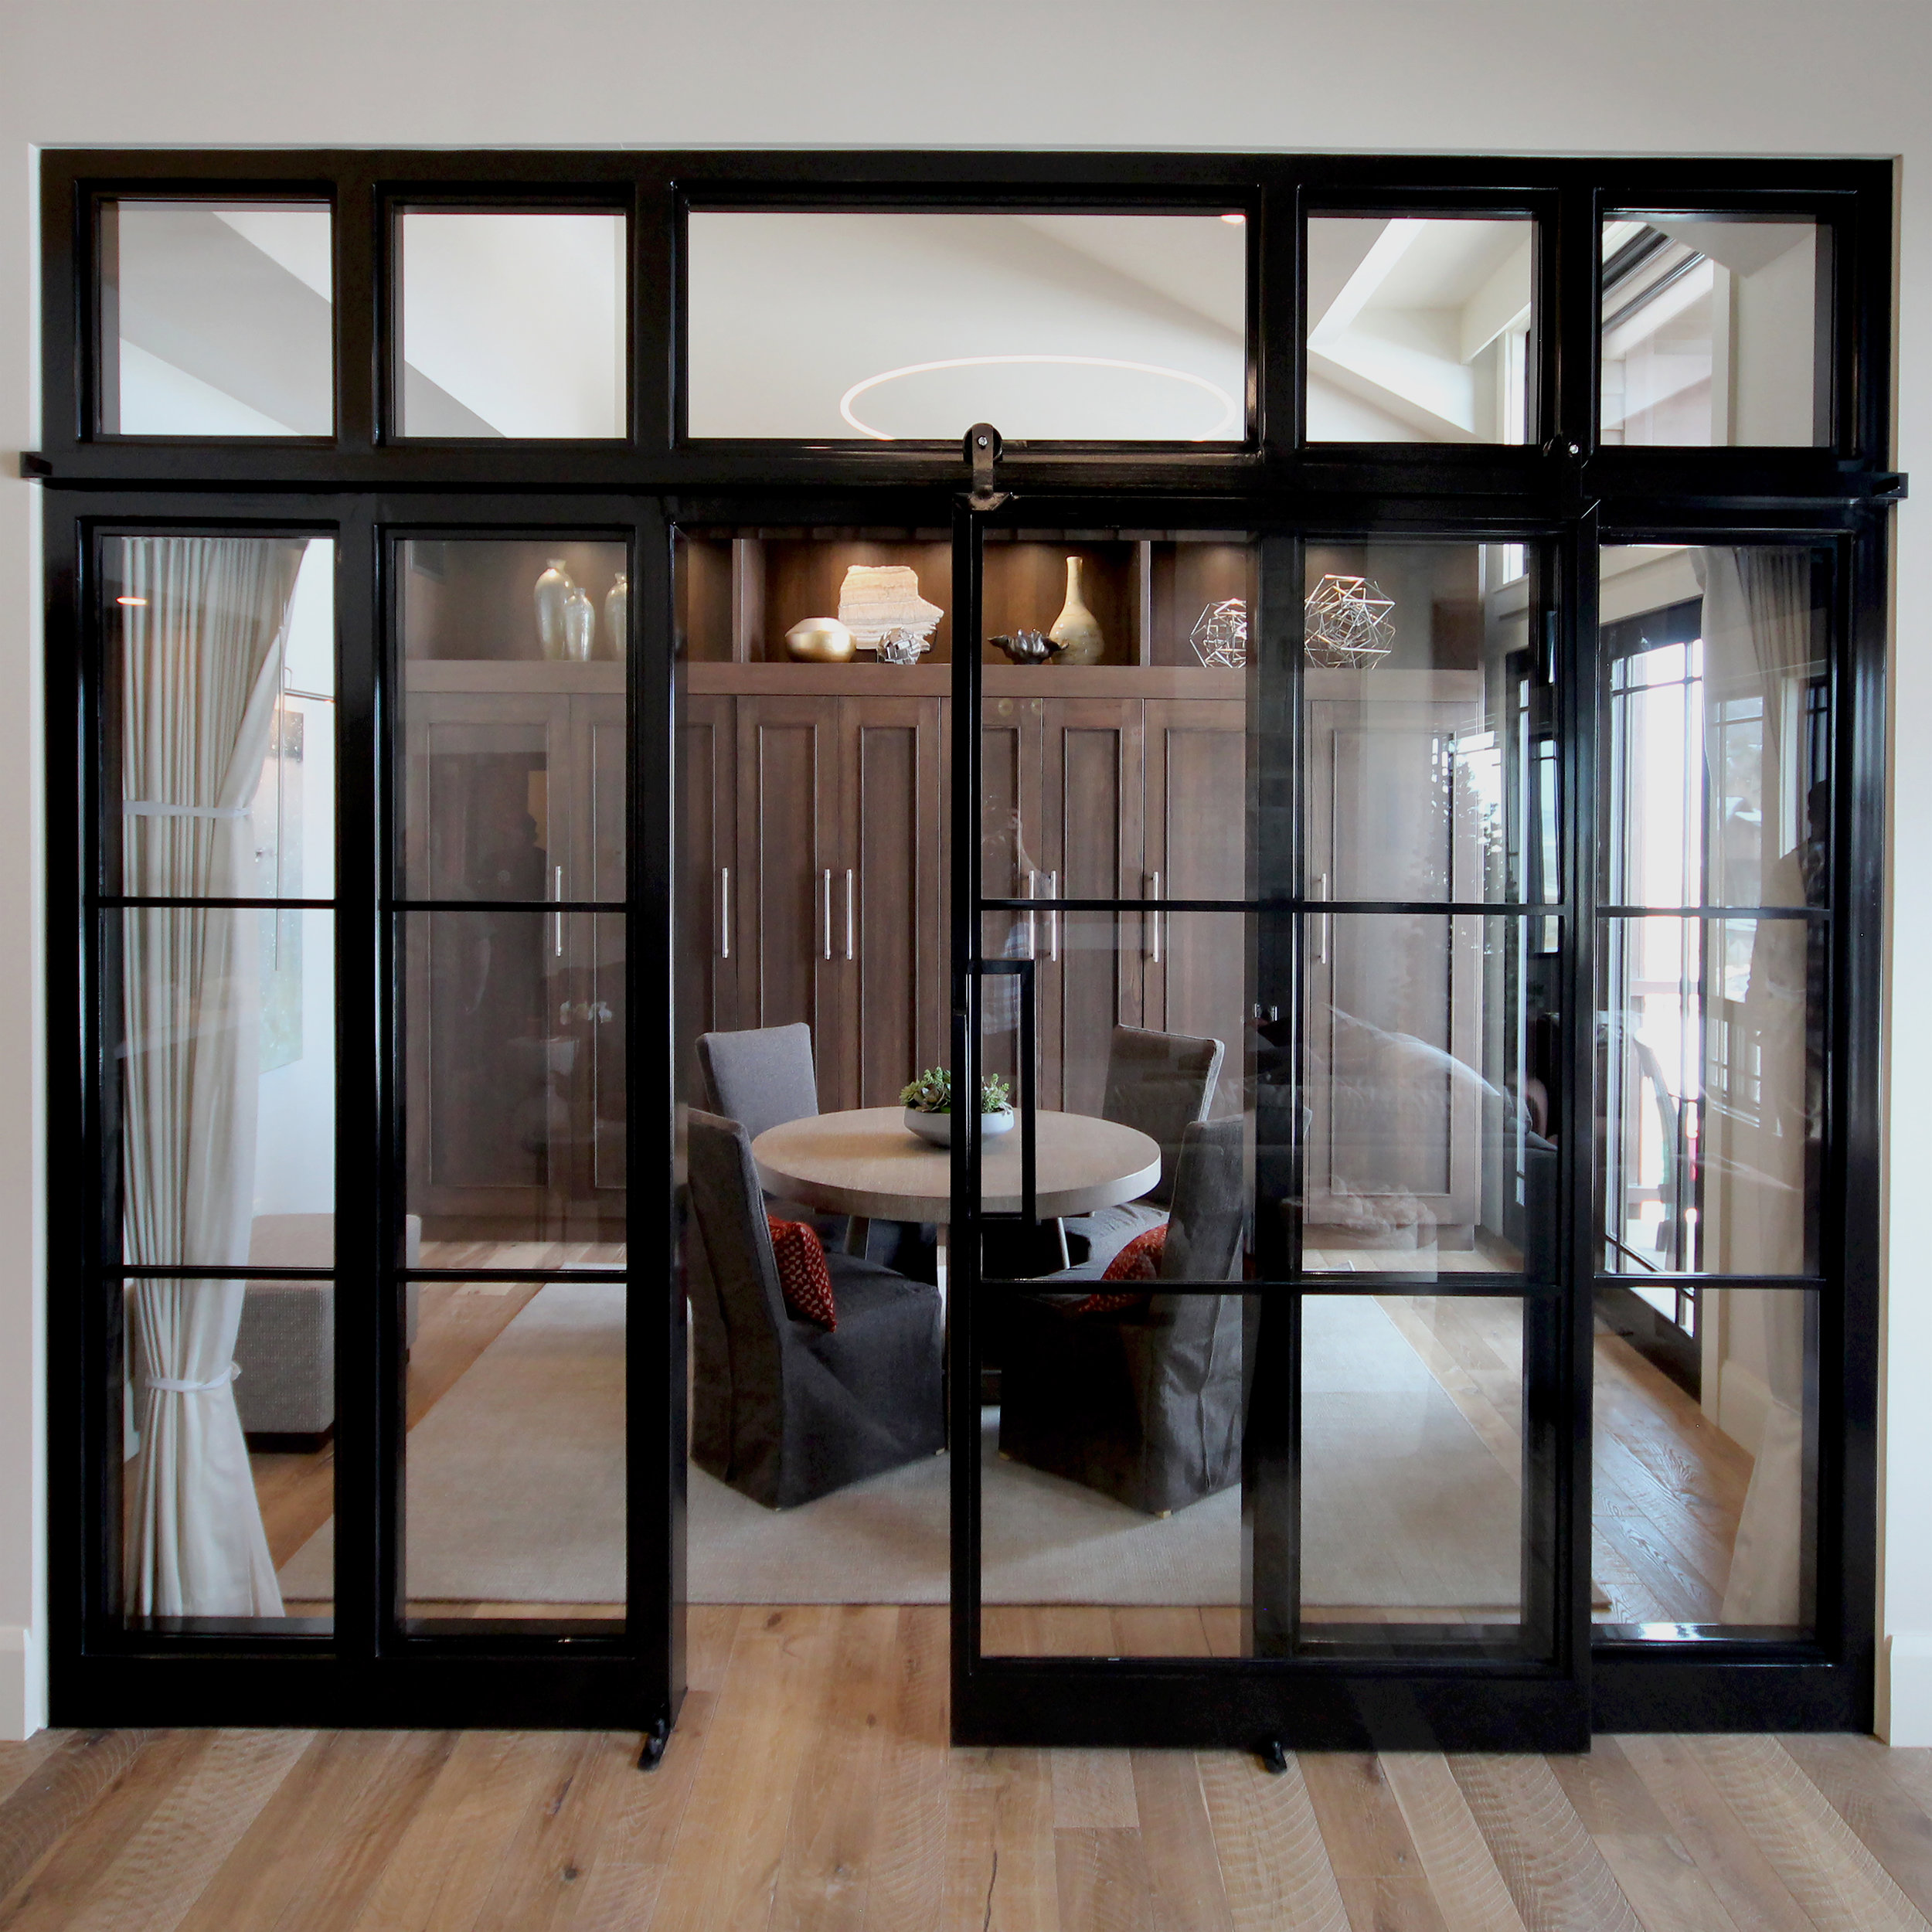 Glass Wall Barn Door Small.jpg